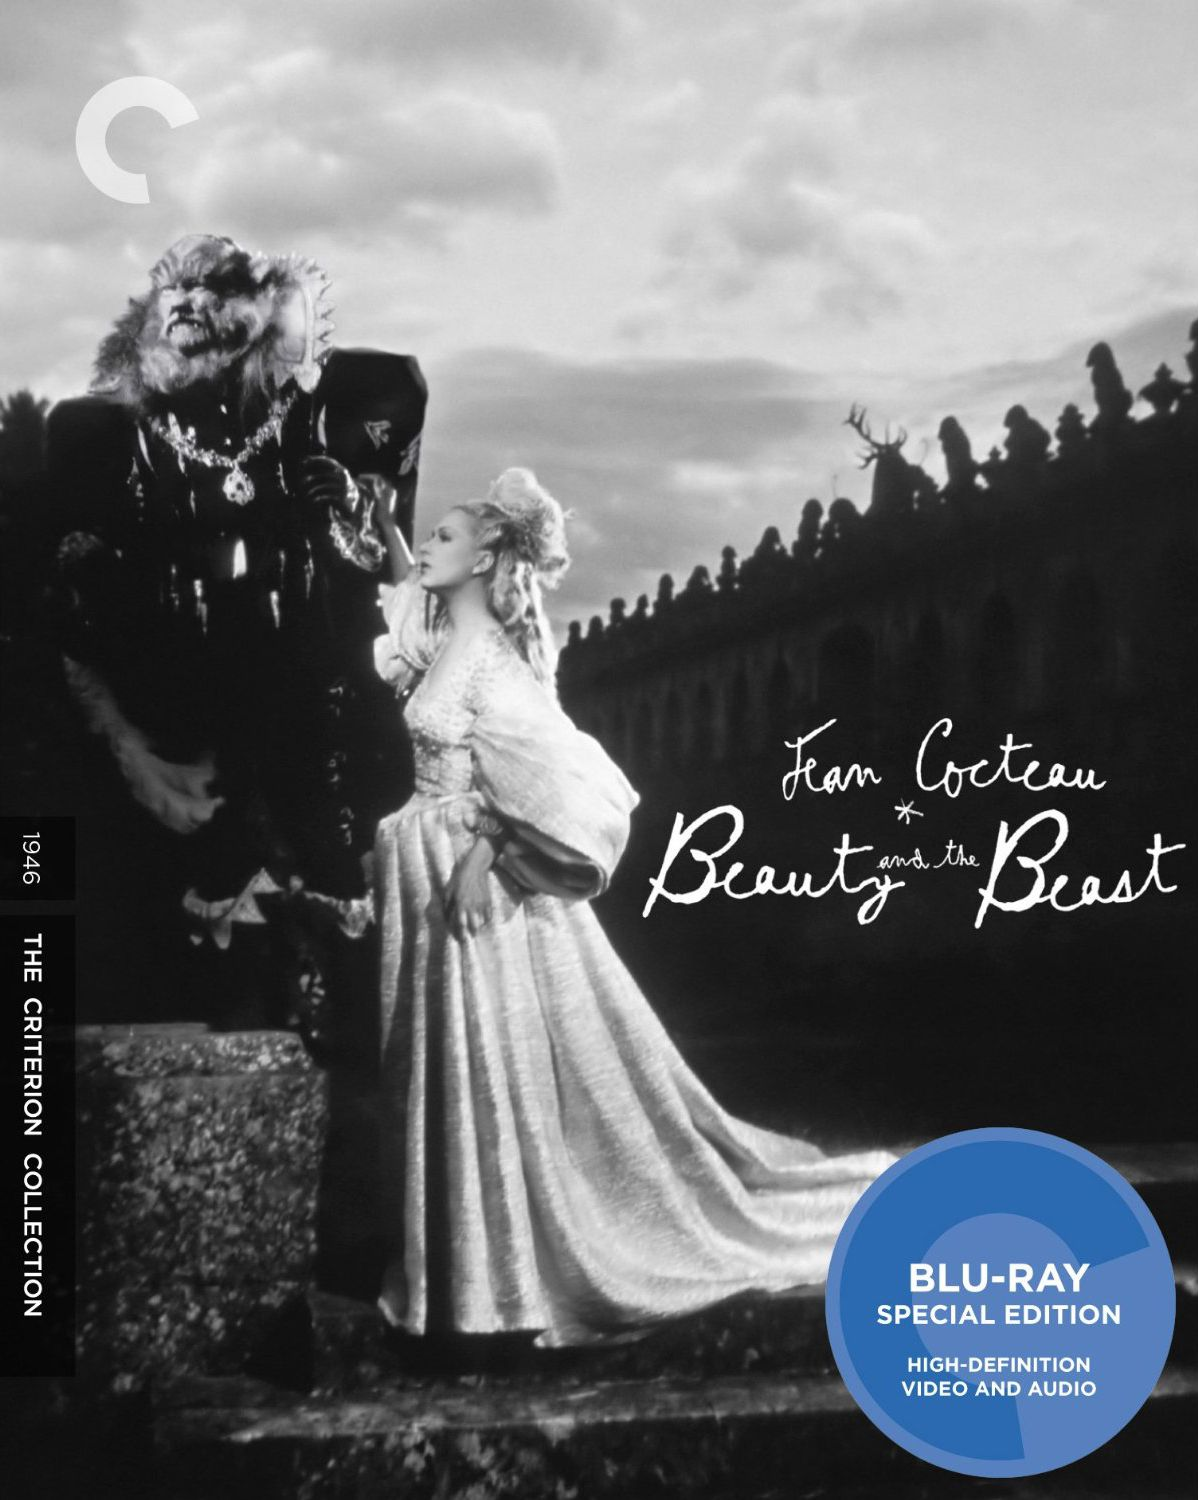 beauty and the beast blu ray review slant magazine